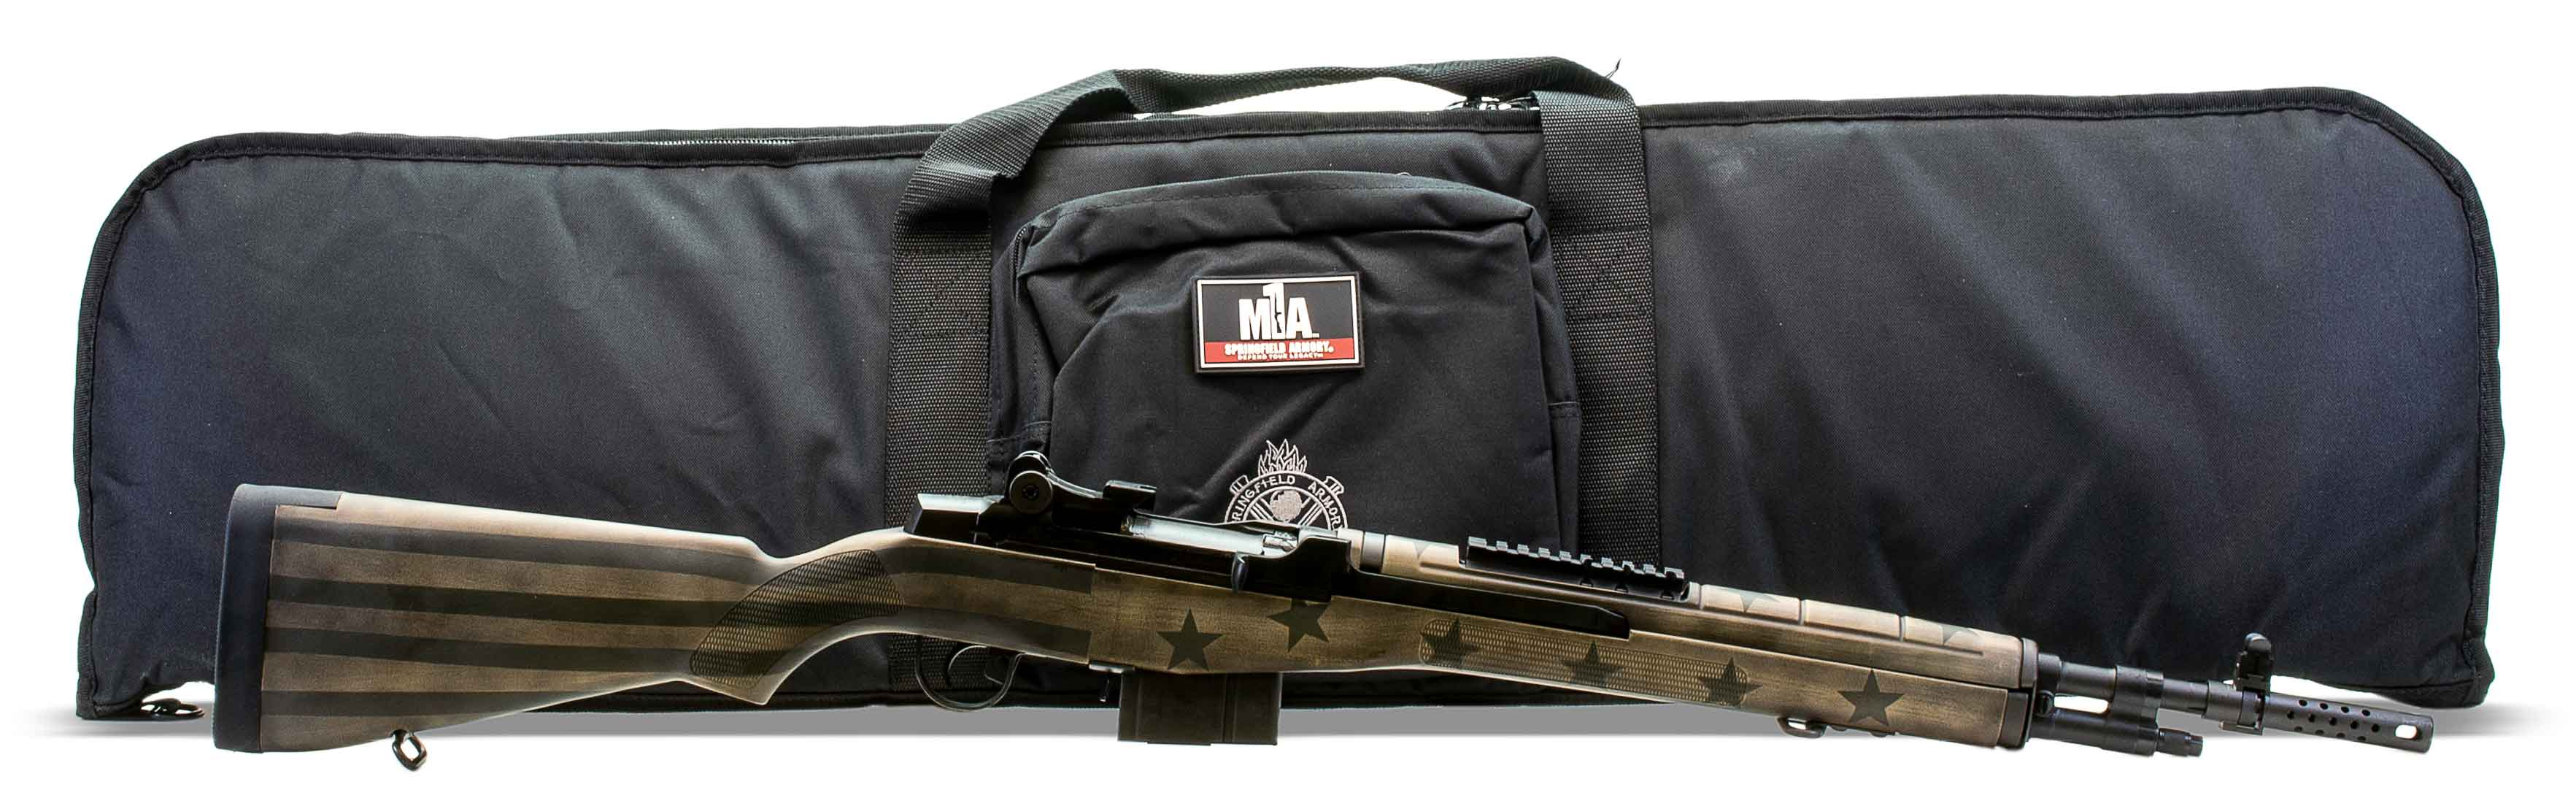 Springfield M1a Scout Squad 7 62 308 Sand Green Flag Stock